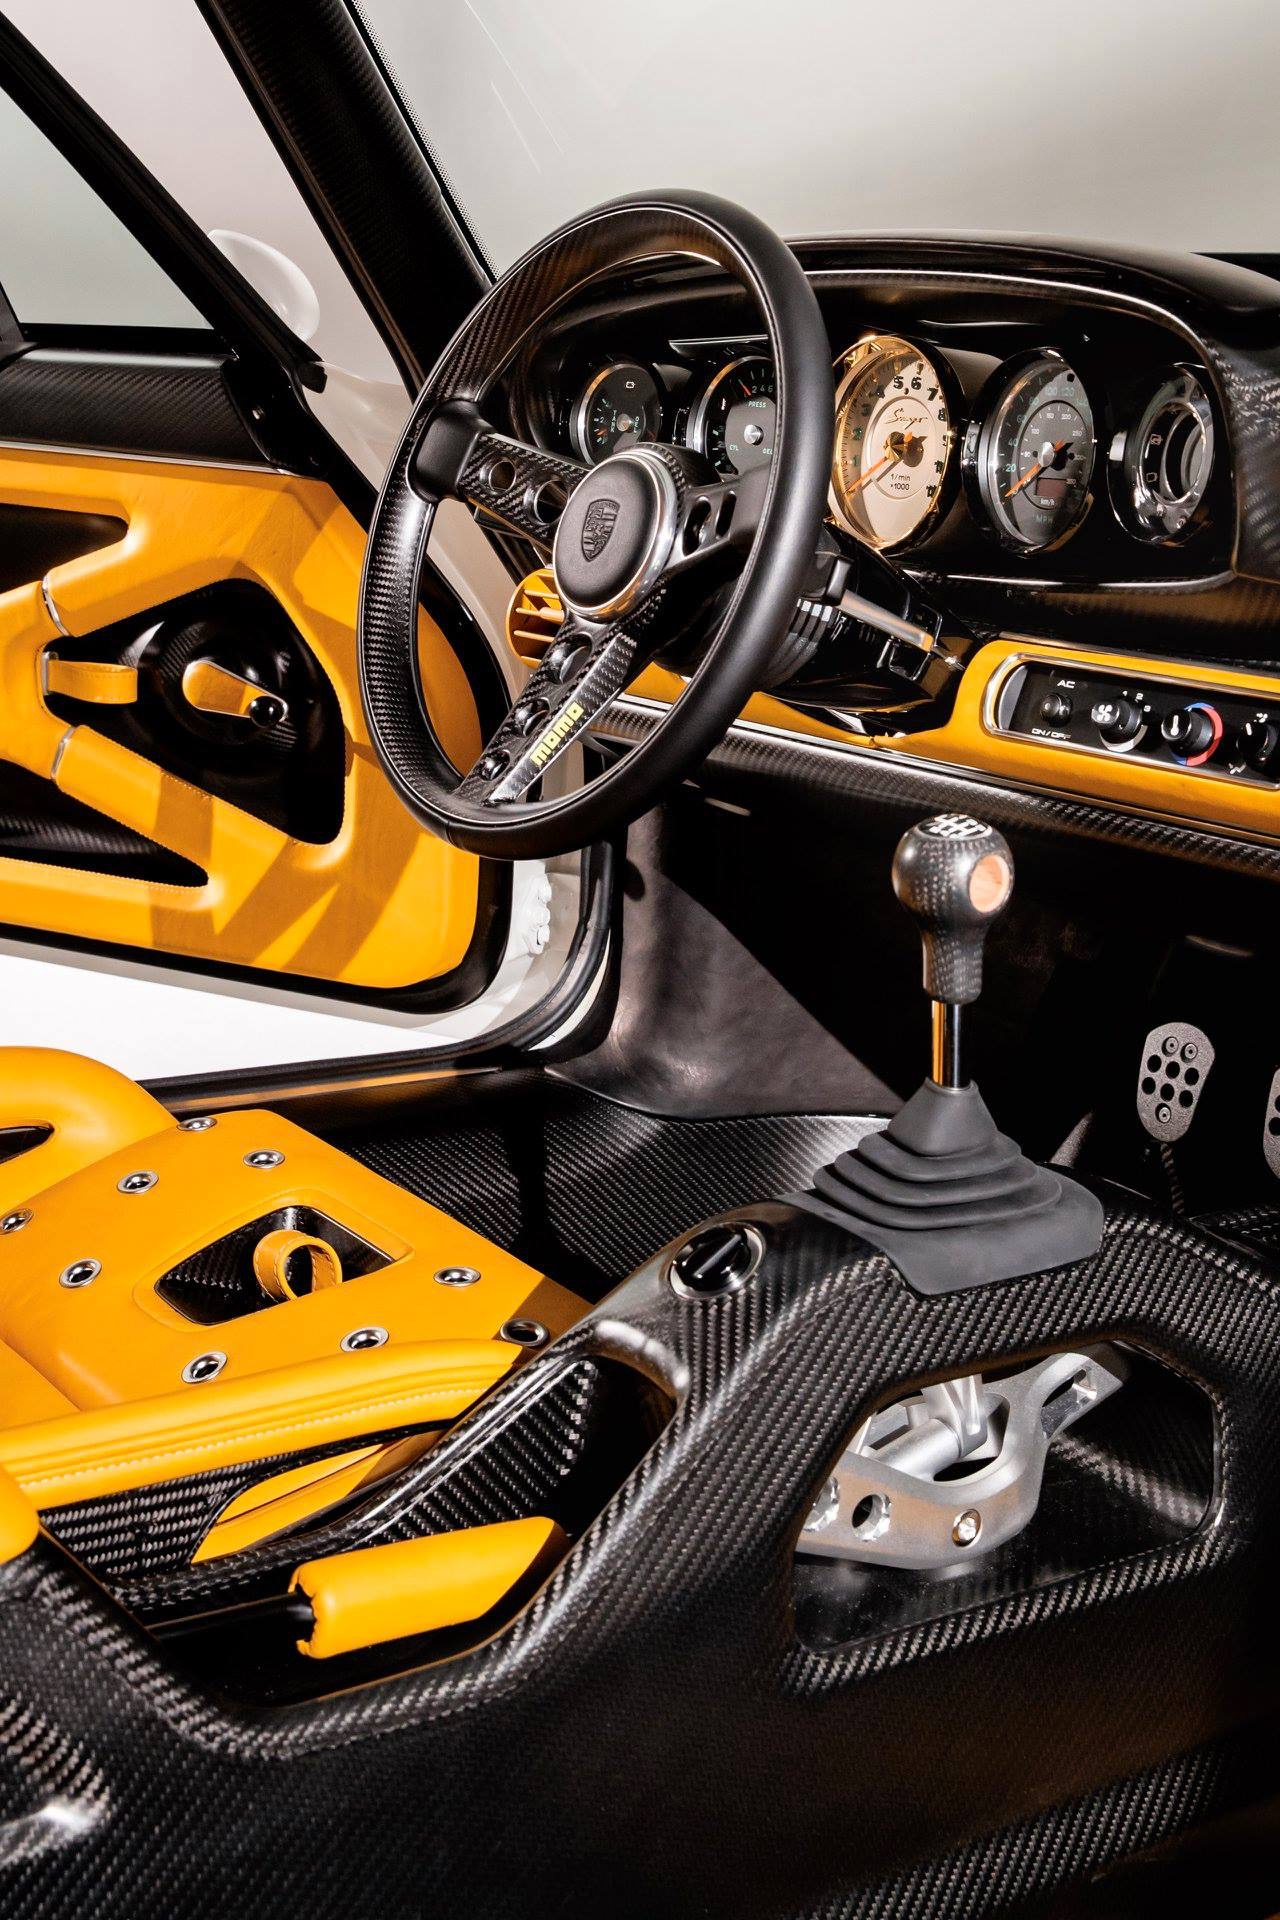 Singer Dynamics and Lightweighting Study : Oh my God !!!! 30